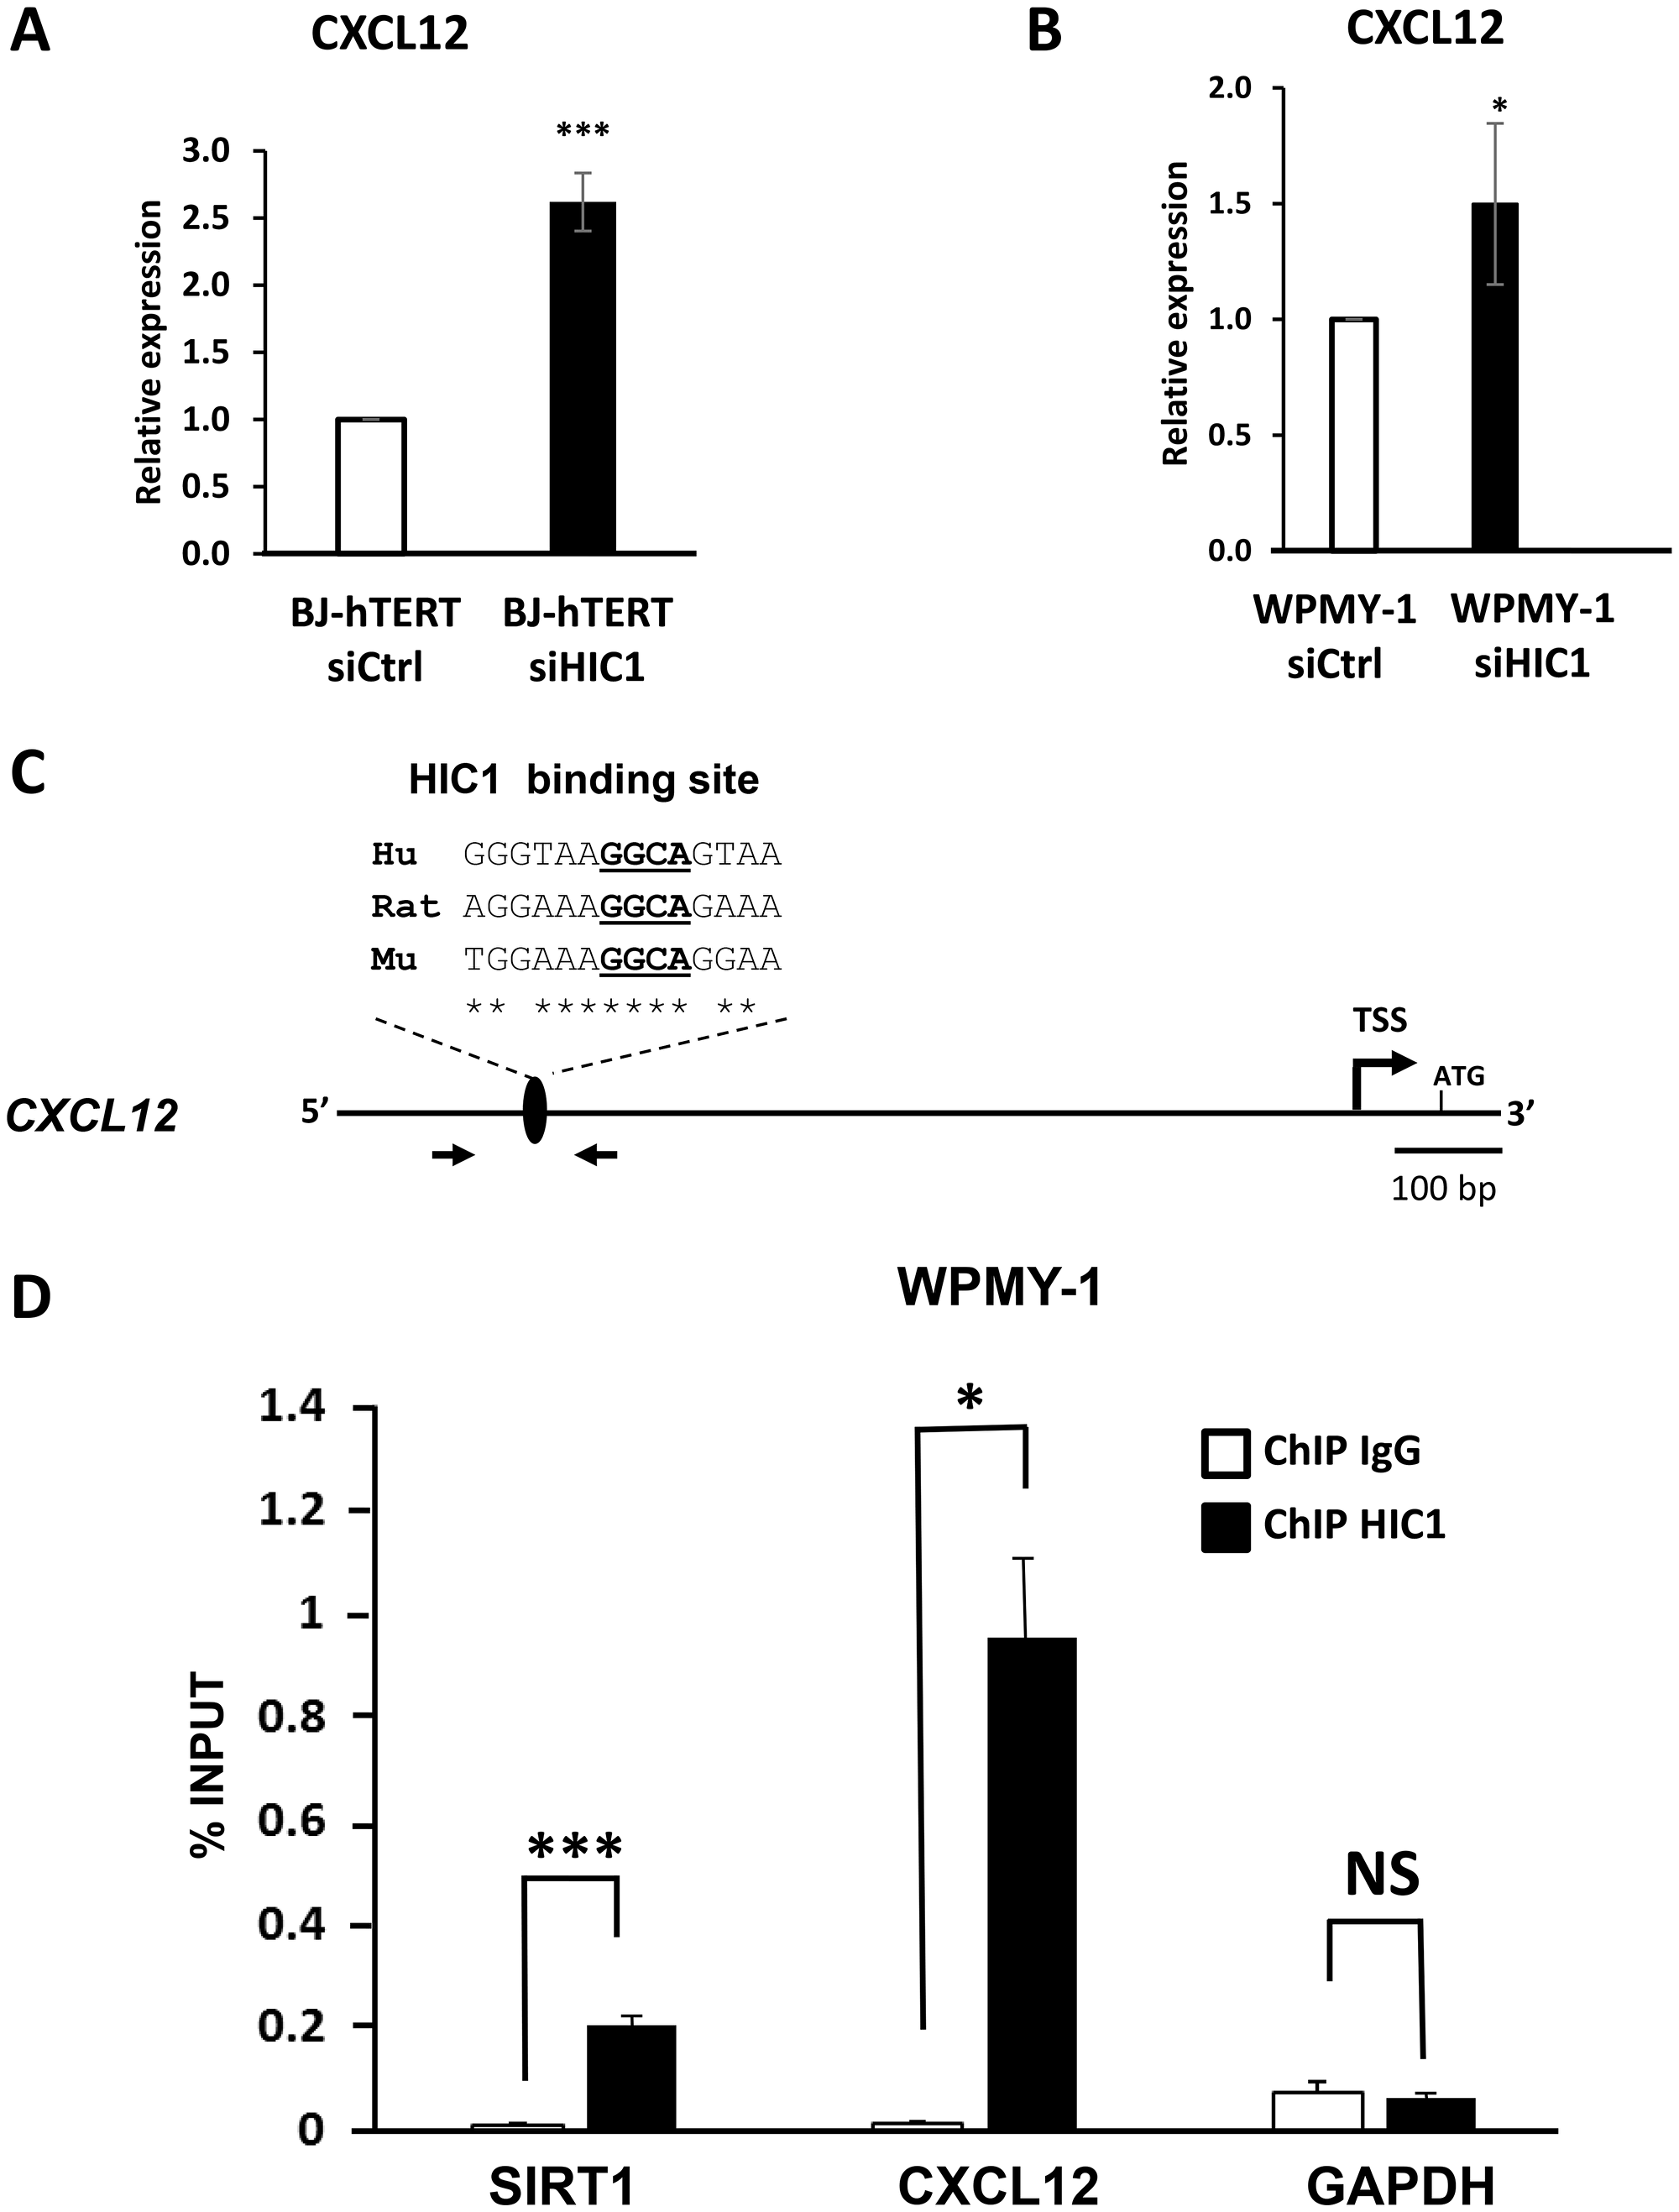 CXCL12/SDF1 is a direct target gene of HIC1 in the myofibroblastic cell line WPMY-1.